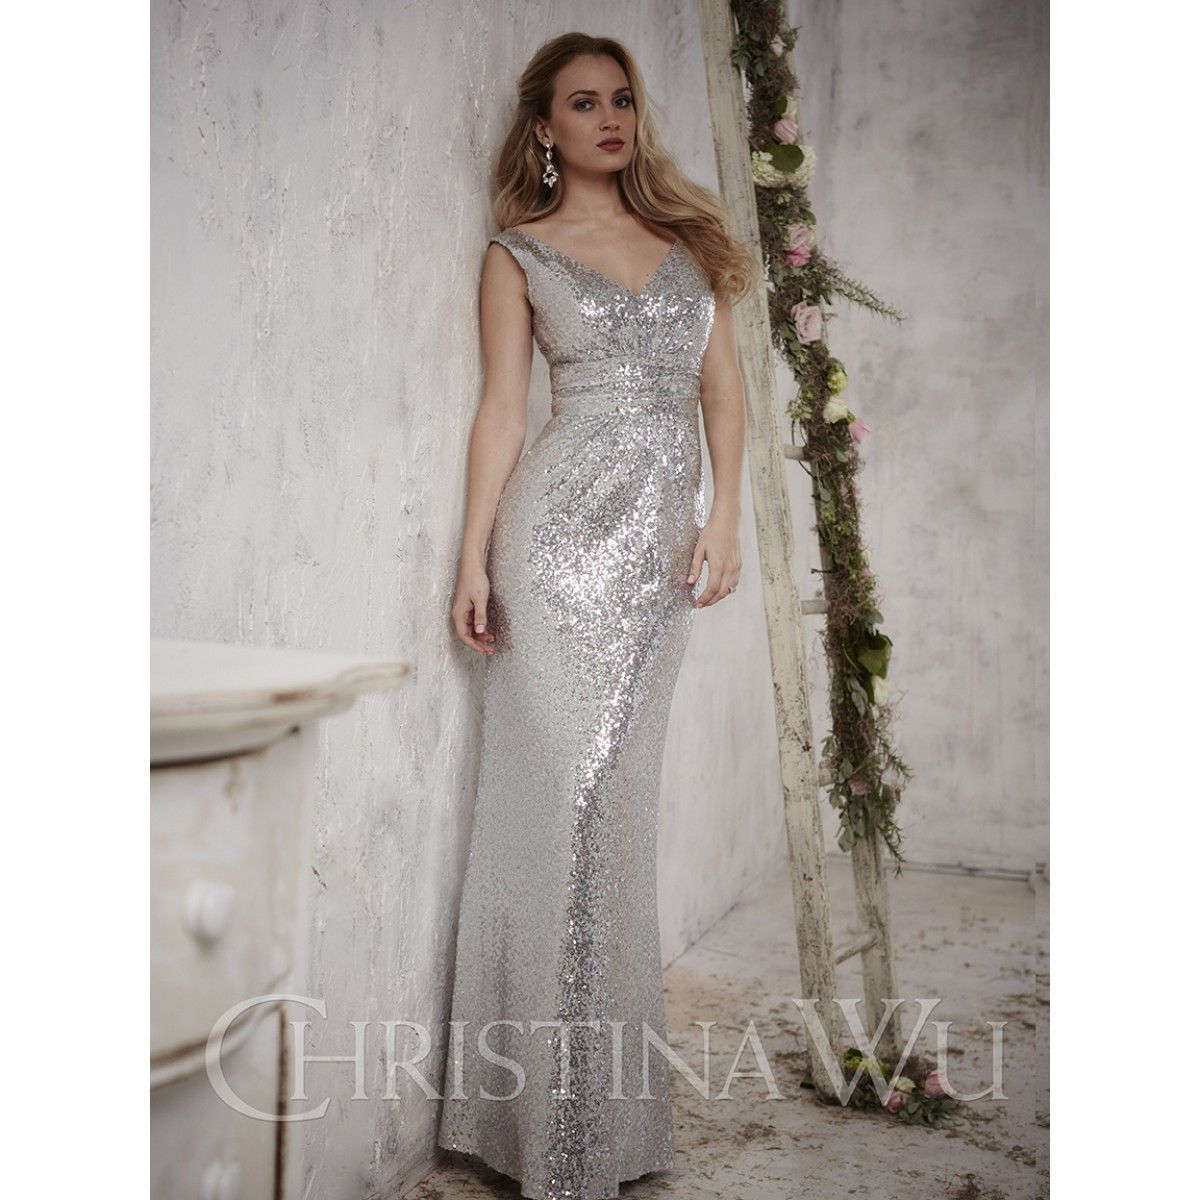 Christina Wu By House Of Bridesmaid Dress Style 22708 Available Online For Purchase